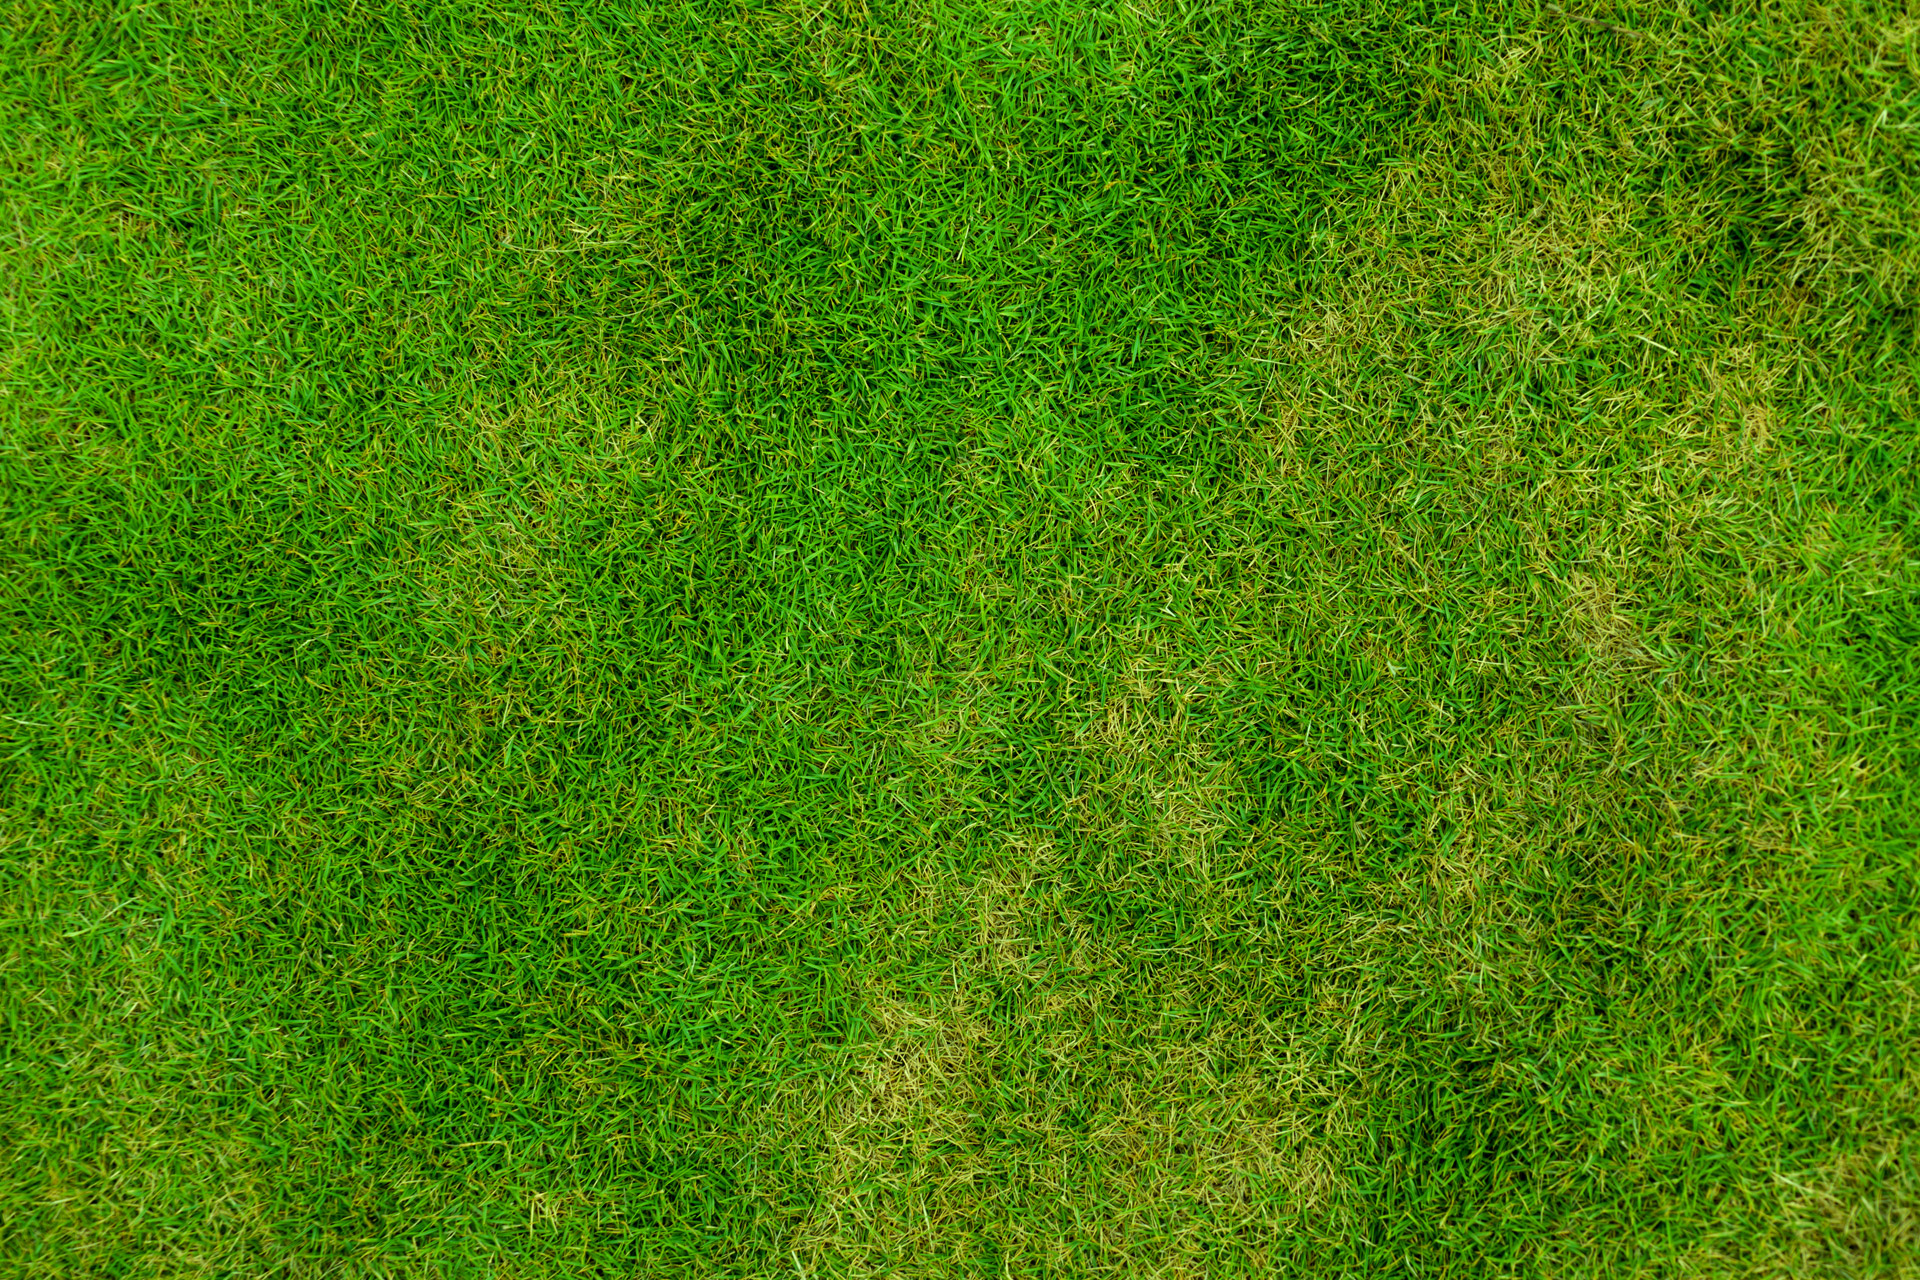 Grass, grass, texture, texture and backgrounds grass, green grass